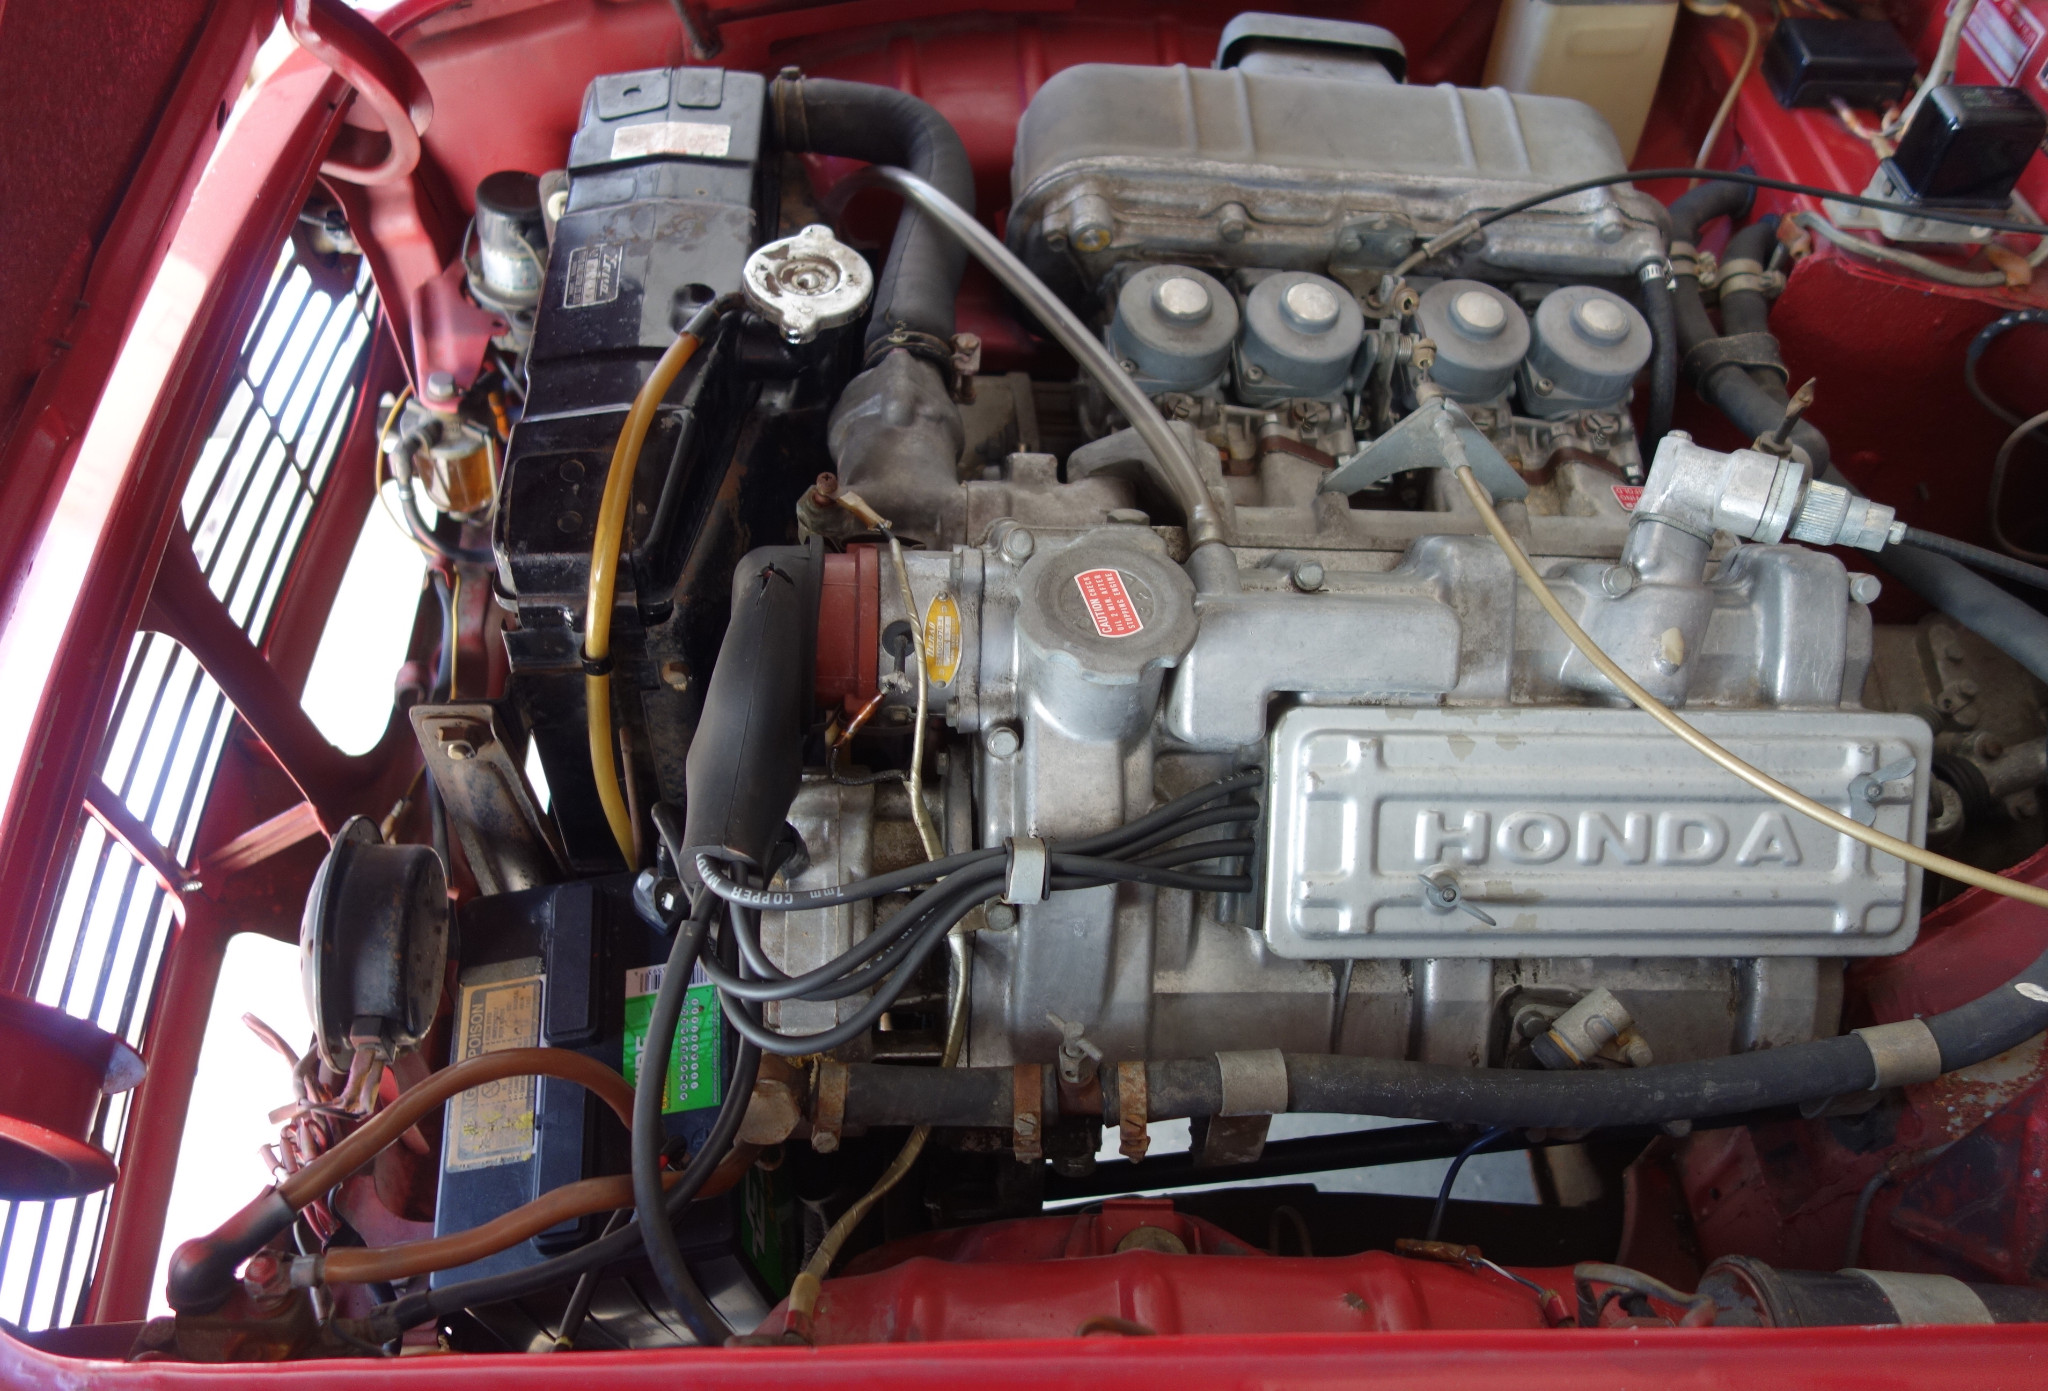 Opening The Engine Bay Of The Honda S600 The First Thing That Strikes You  Are The